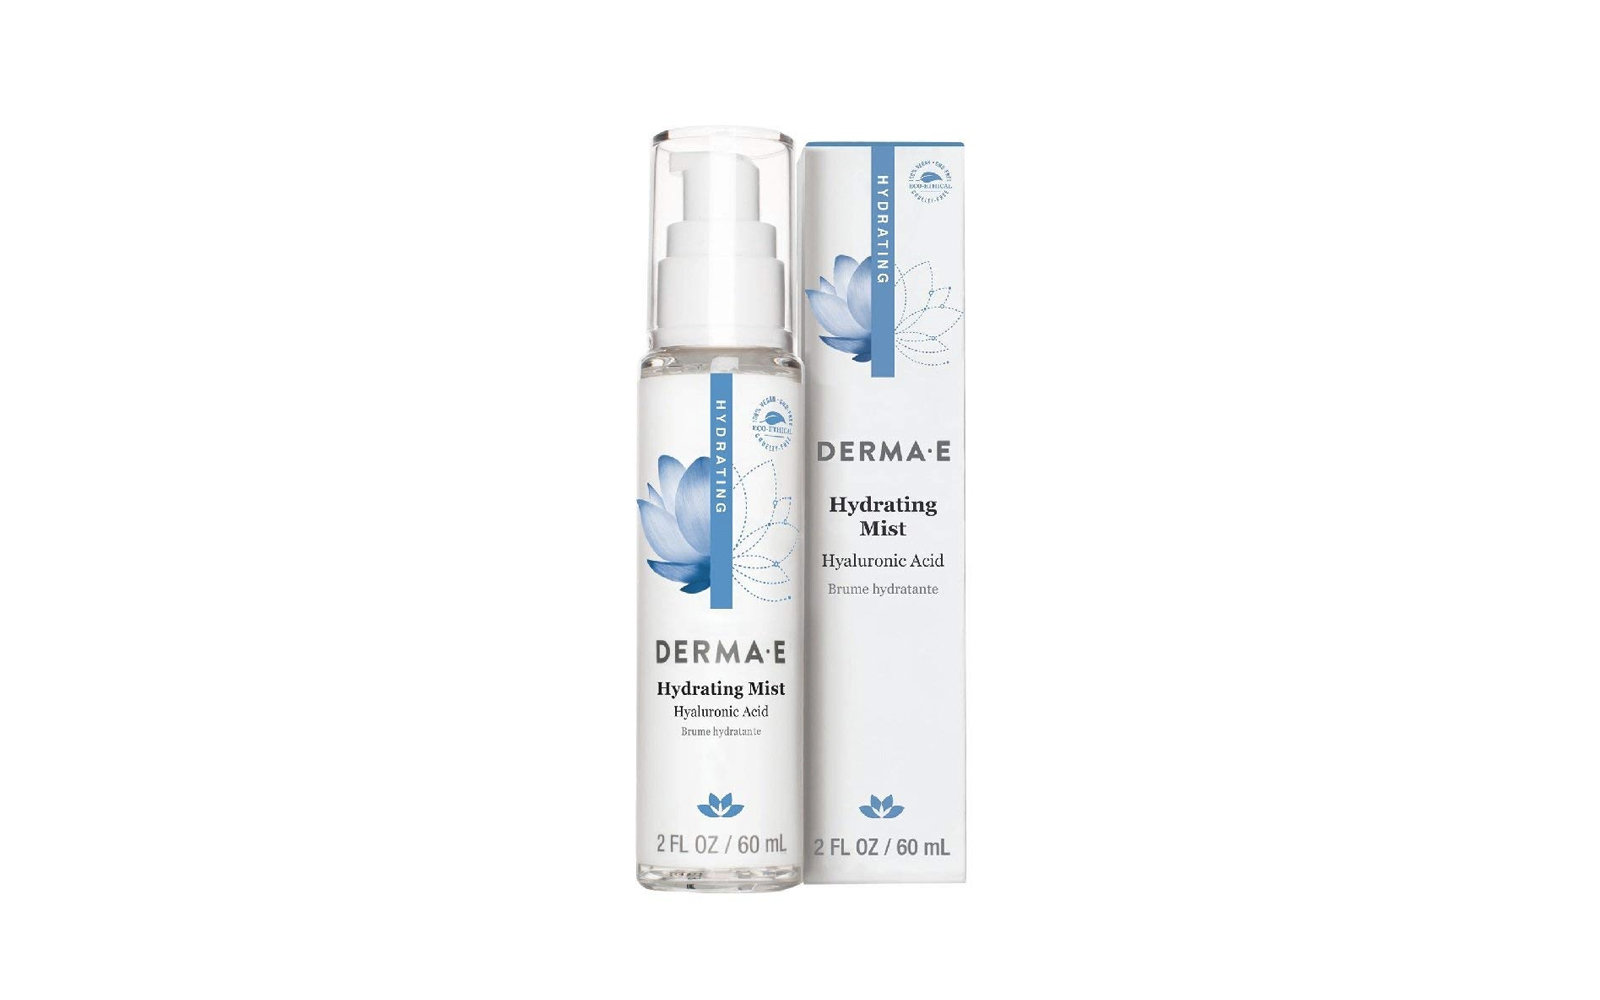 DERMA-E Hydrating Mist with Hyaluronic Acid